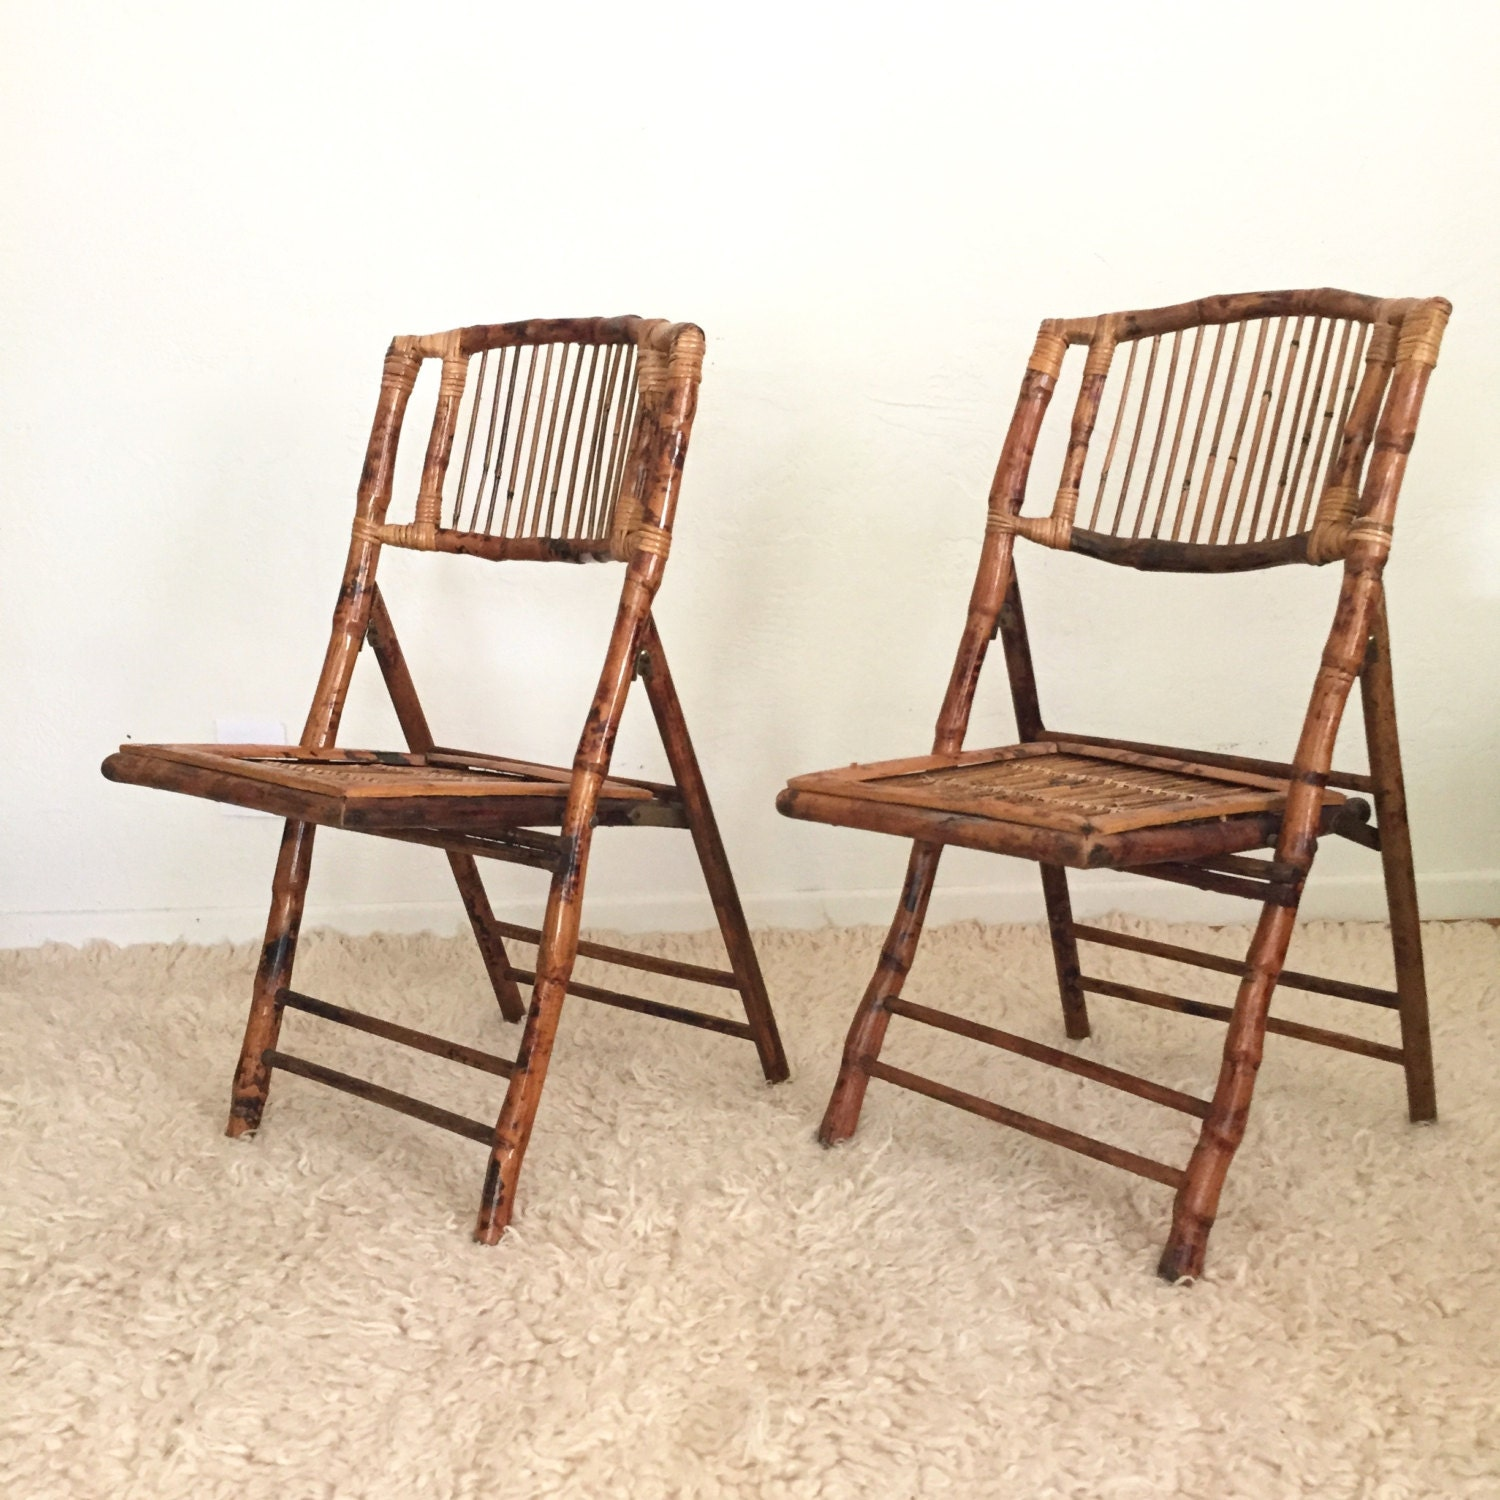 Bamboo Rattan Folding Chairs Set of 2 Rustic by GoldDustGoods